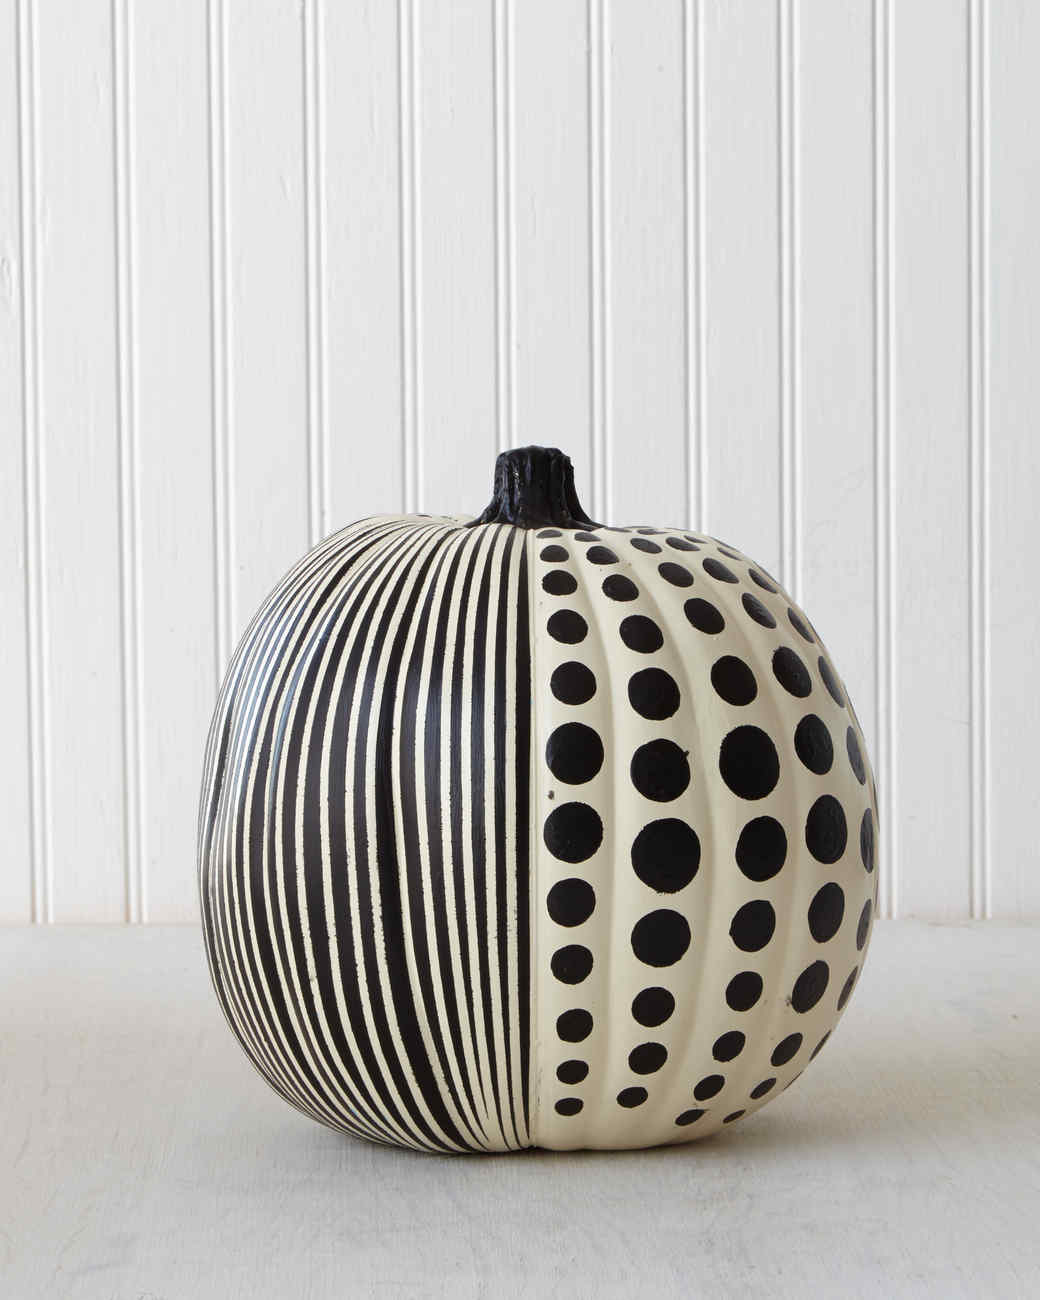 30 Days Of Painted Pumpkins From The MSLO Staff